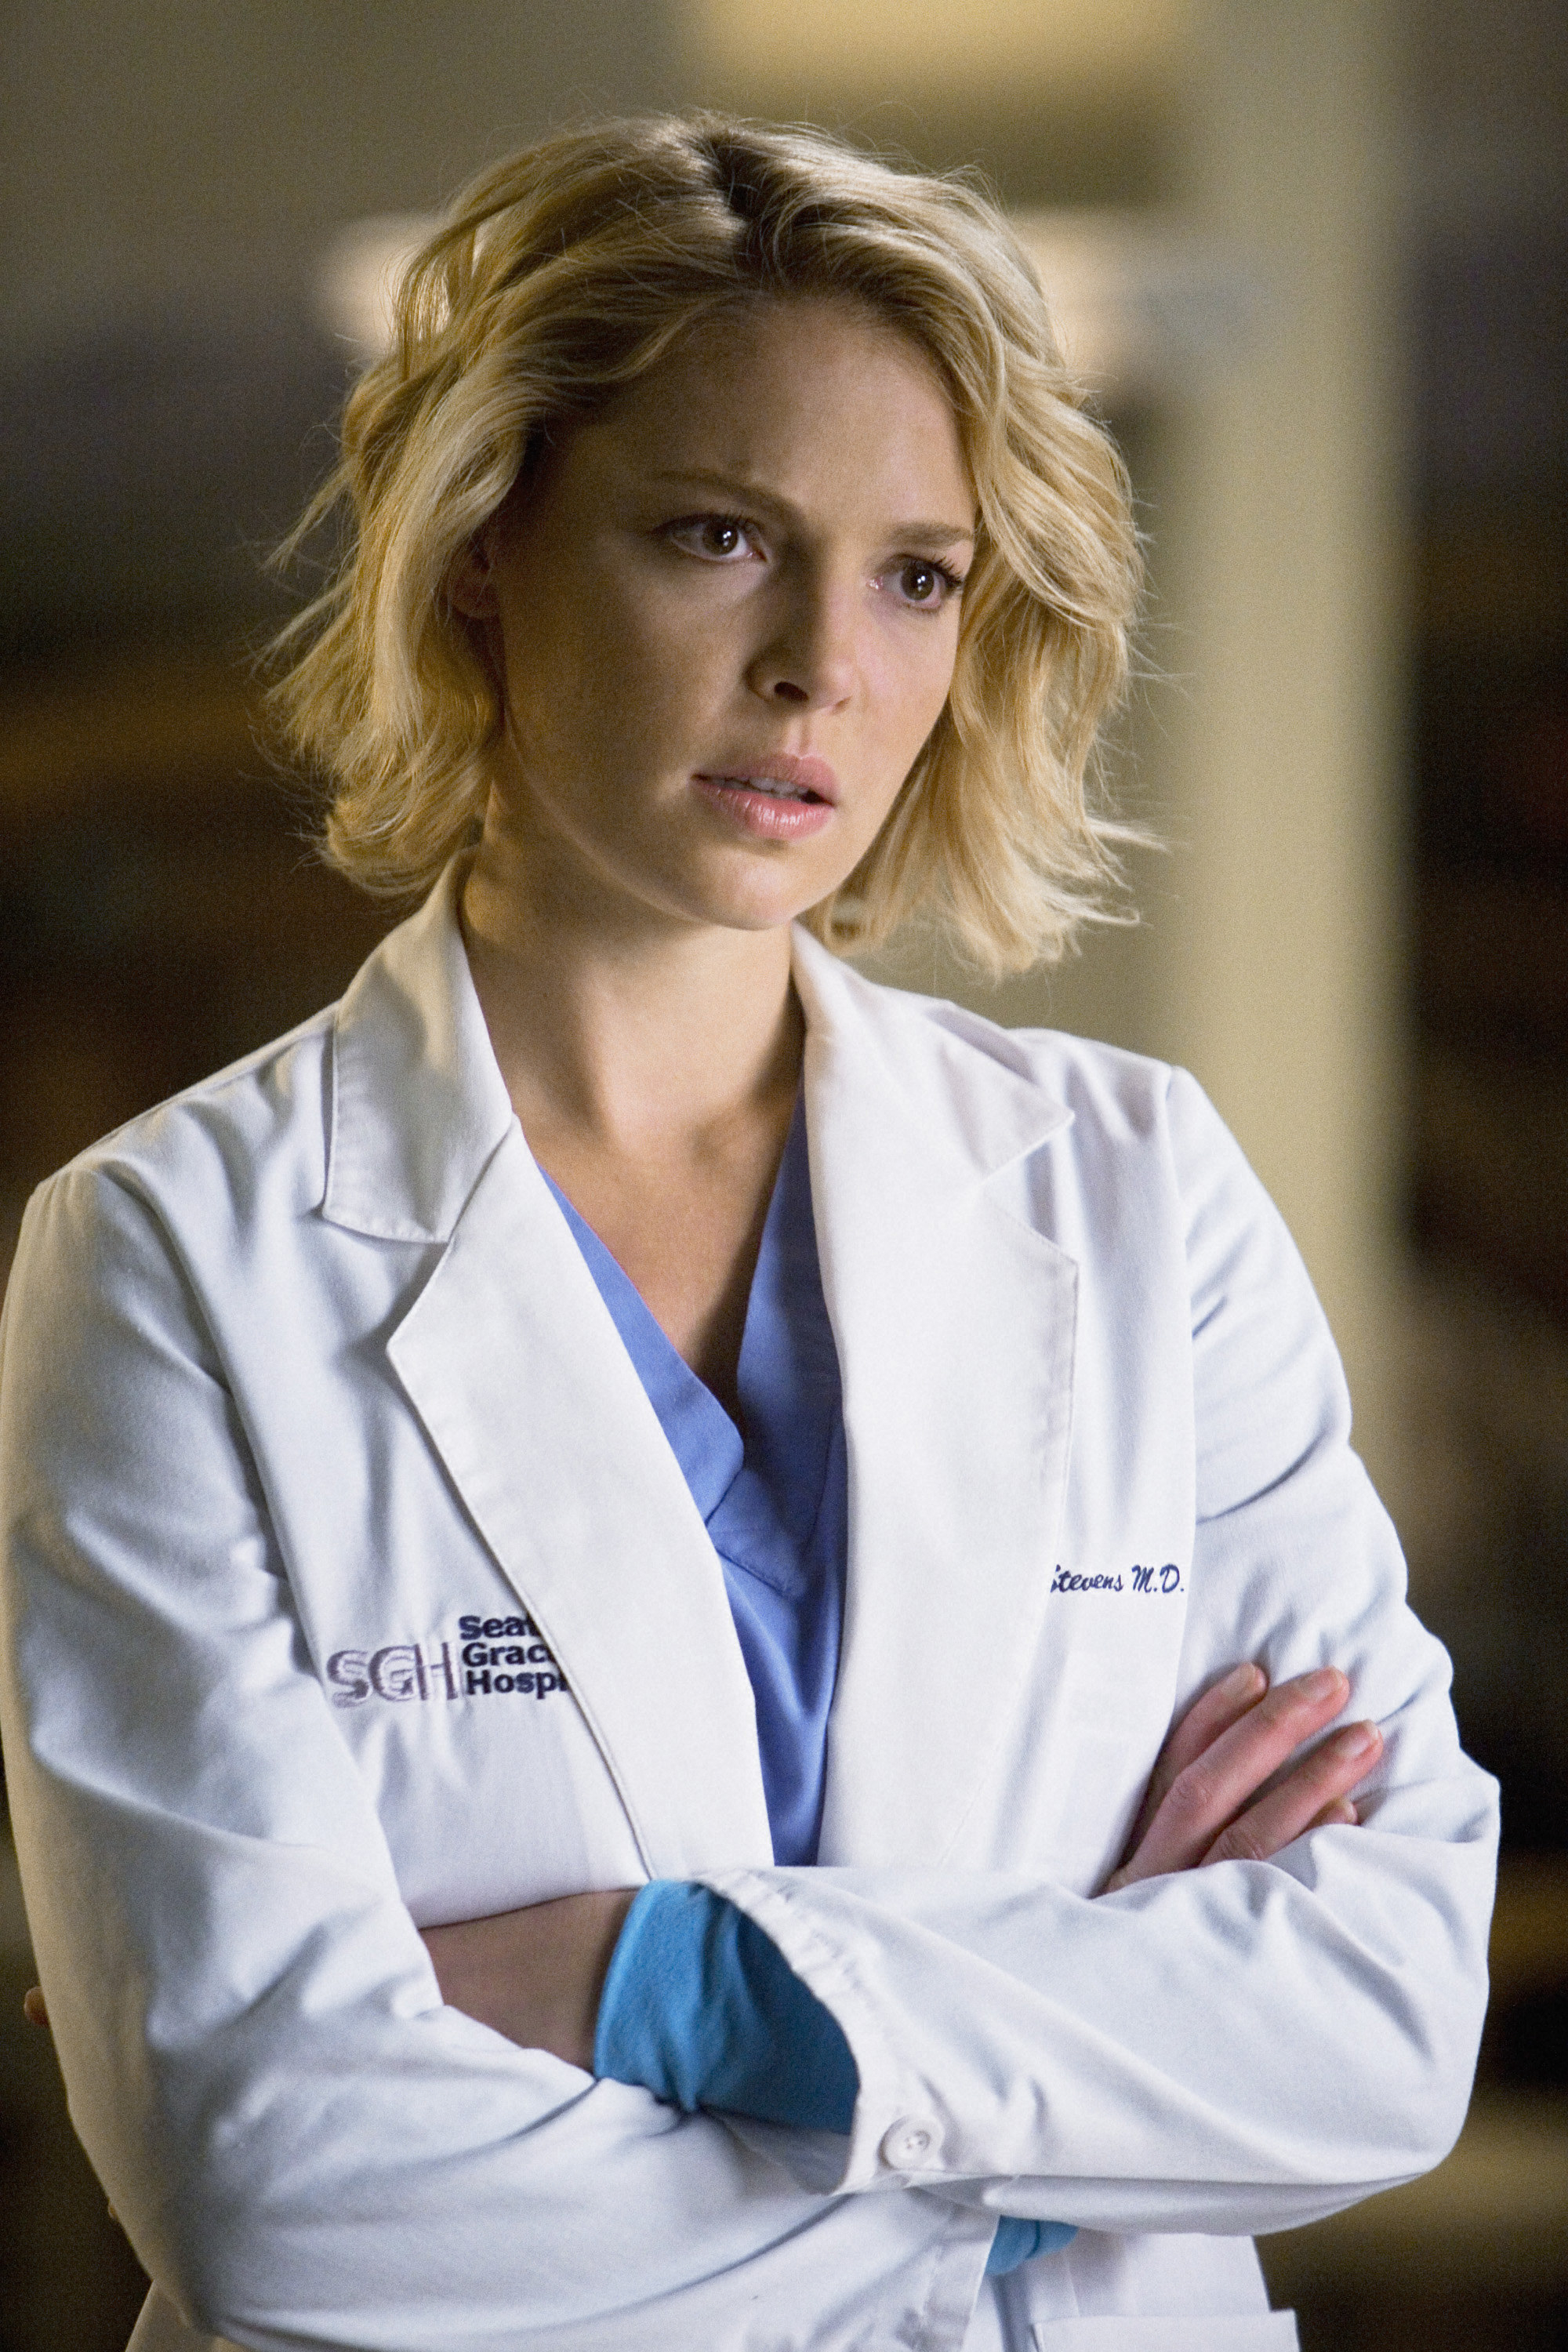 Heigl looks distressed with her arms crossed while wearing a doctor's coat